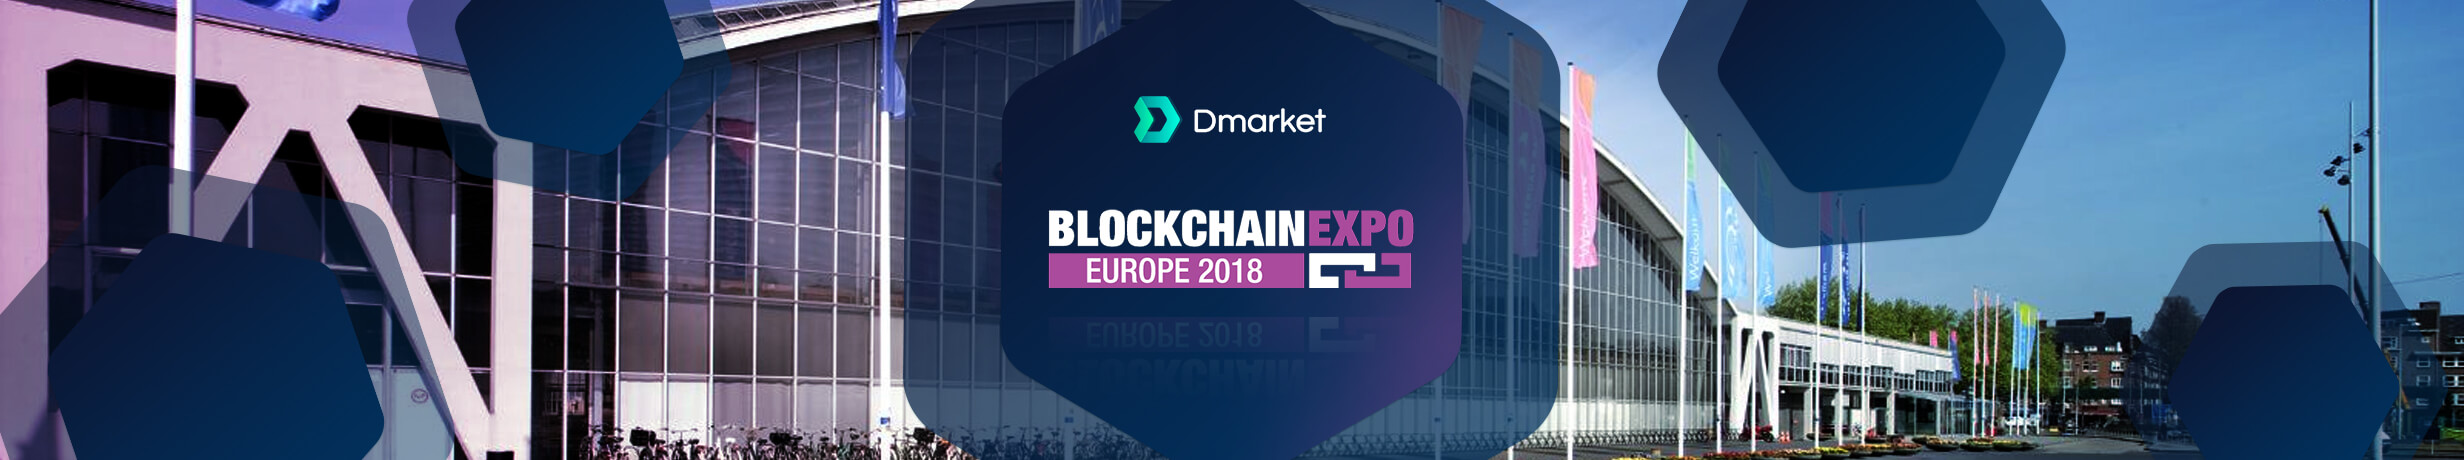 Blockchain Expo 2018: How Gamers are in the Lead Enjoying DLT Benefits